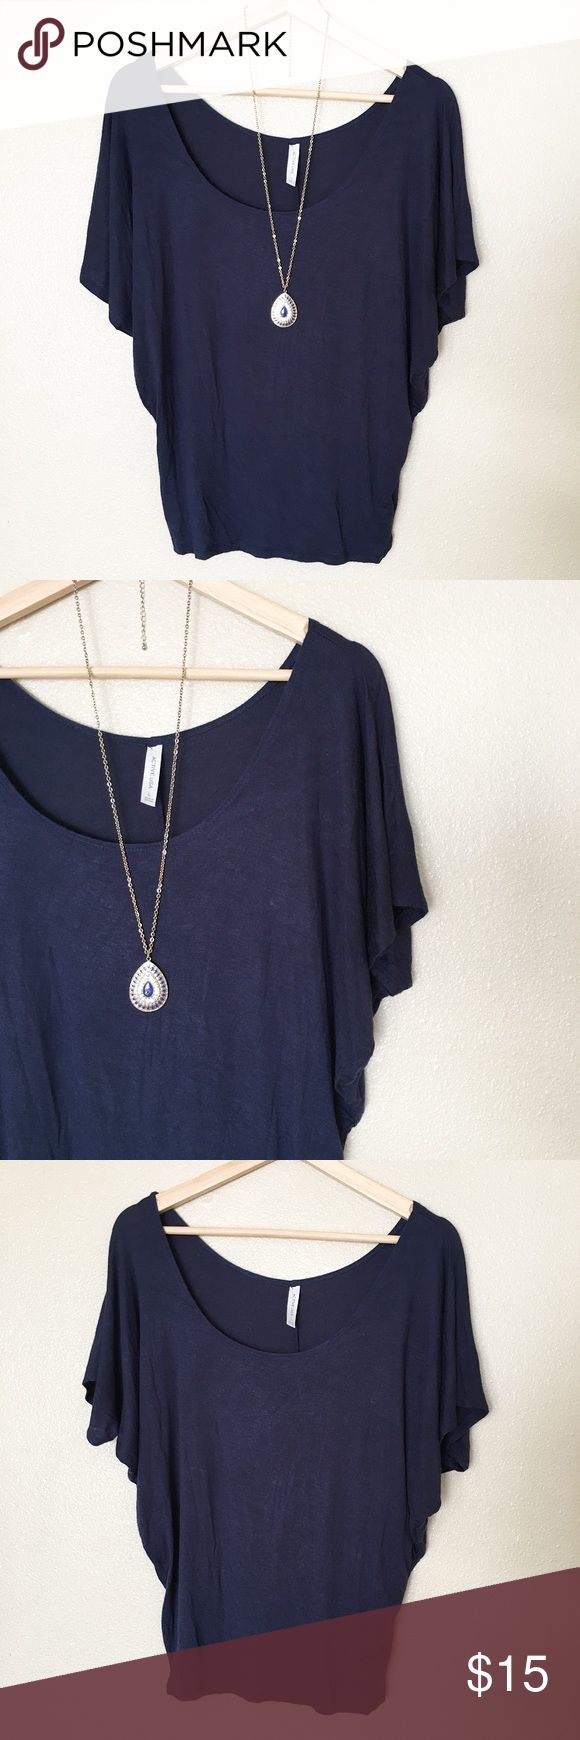 """Navy Blue Batwing Top Casual navy blue batwing top. In good condition. Size L (more like a junior's Large). Measurement from top of shoulder to bottom is 24"""". Stretchy material. 95% Rayon, 5% Spandex.  **Listed as Forever 21 for visibility only.** Thanks for looking! Forever 21 Tops"""